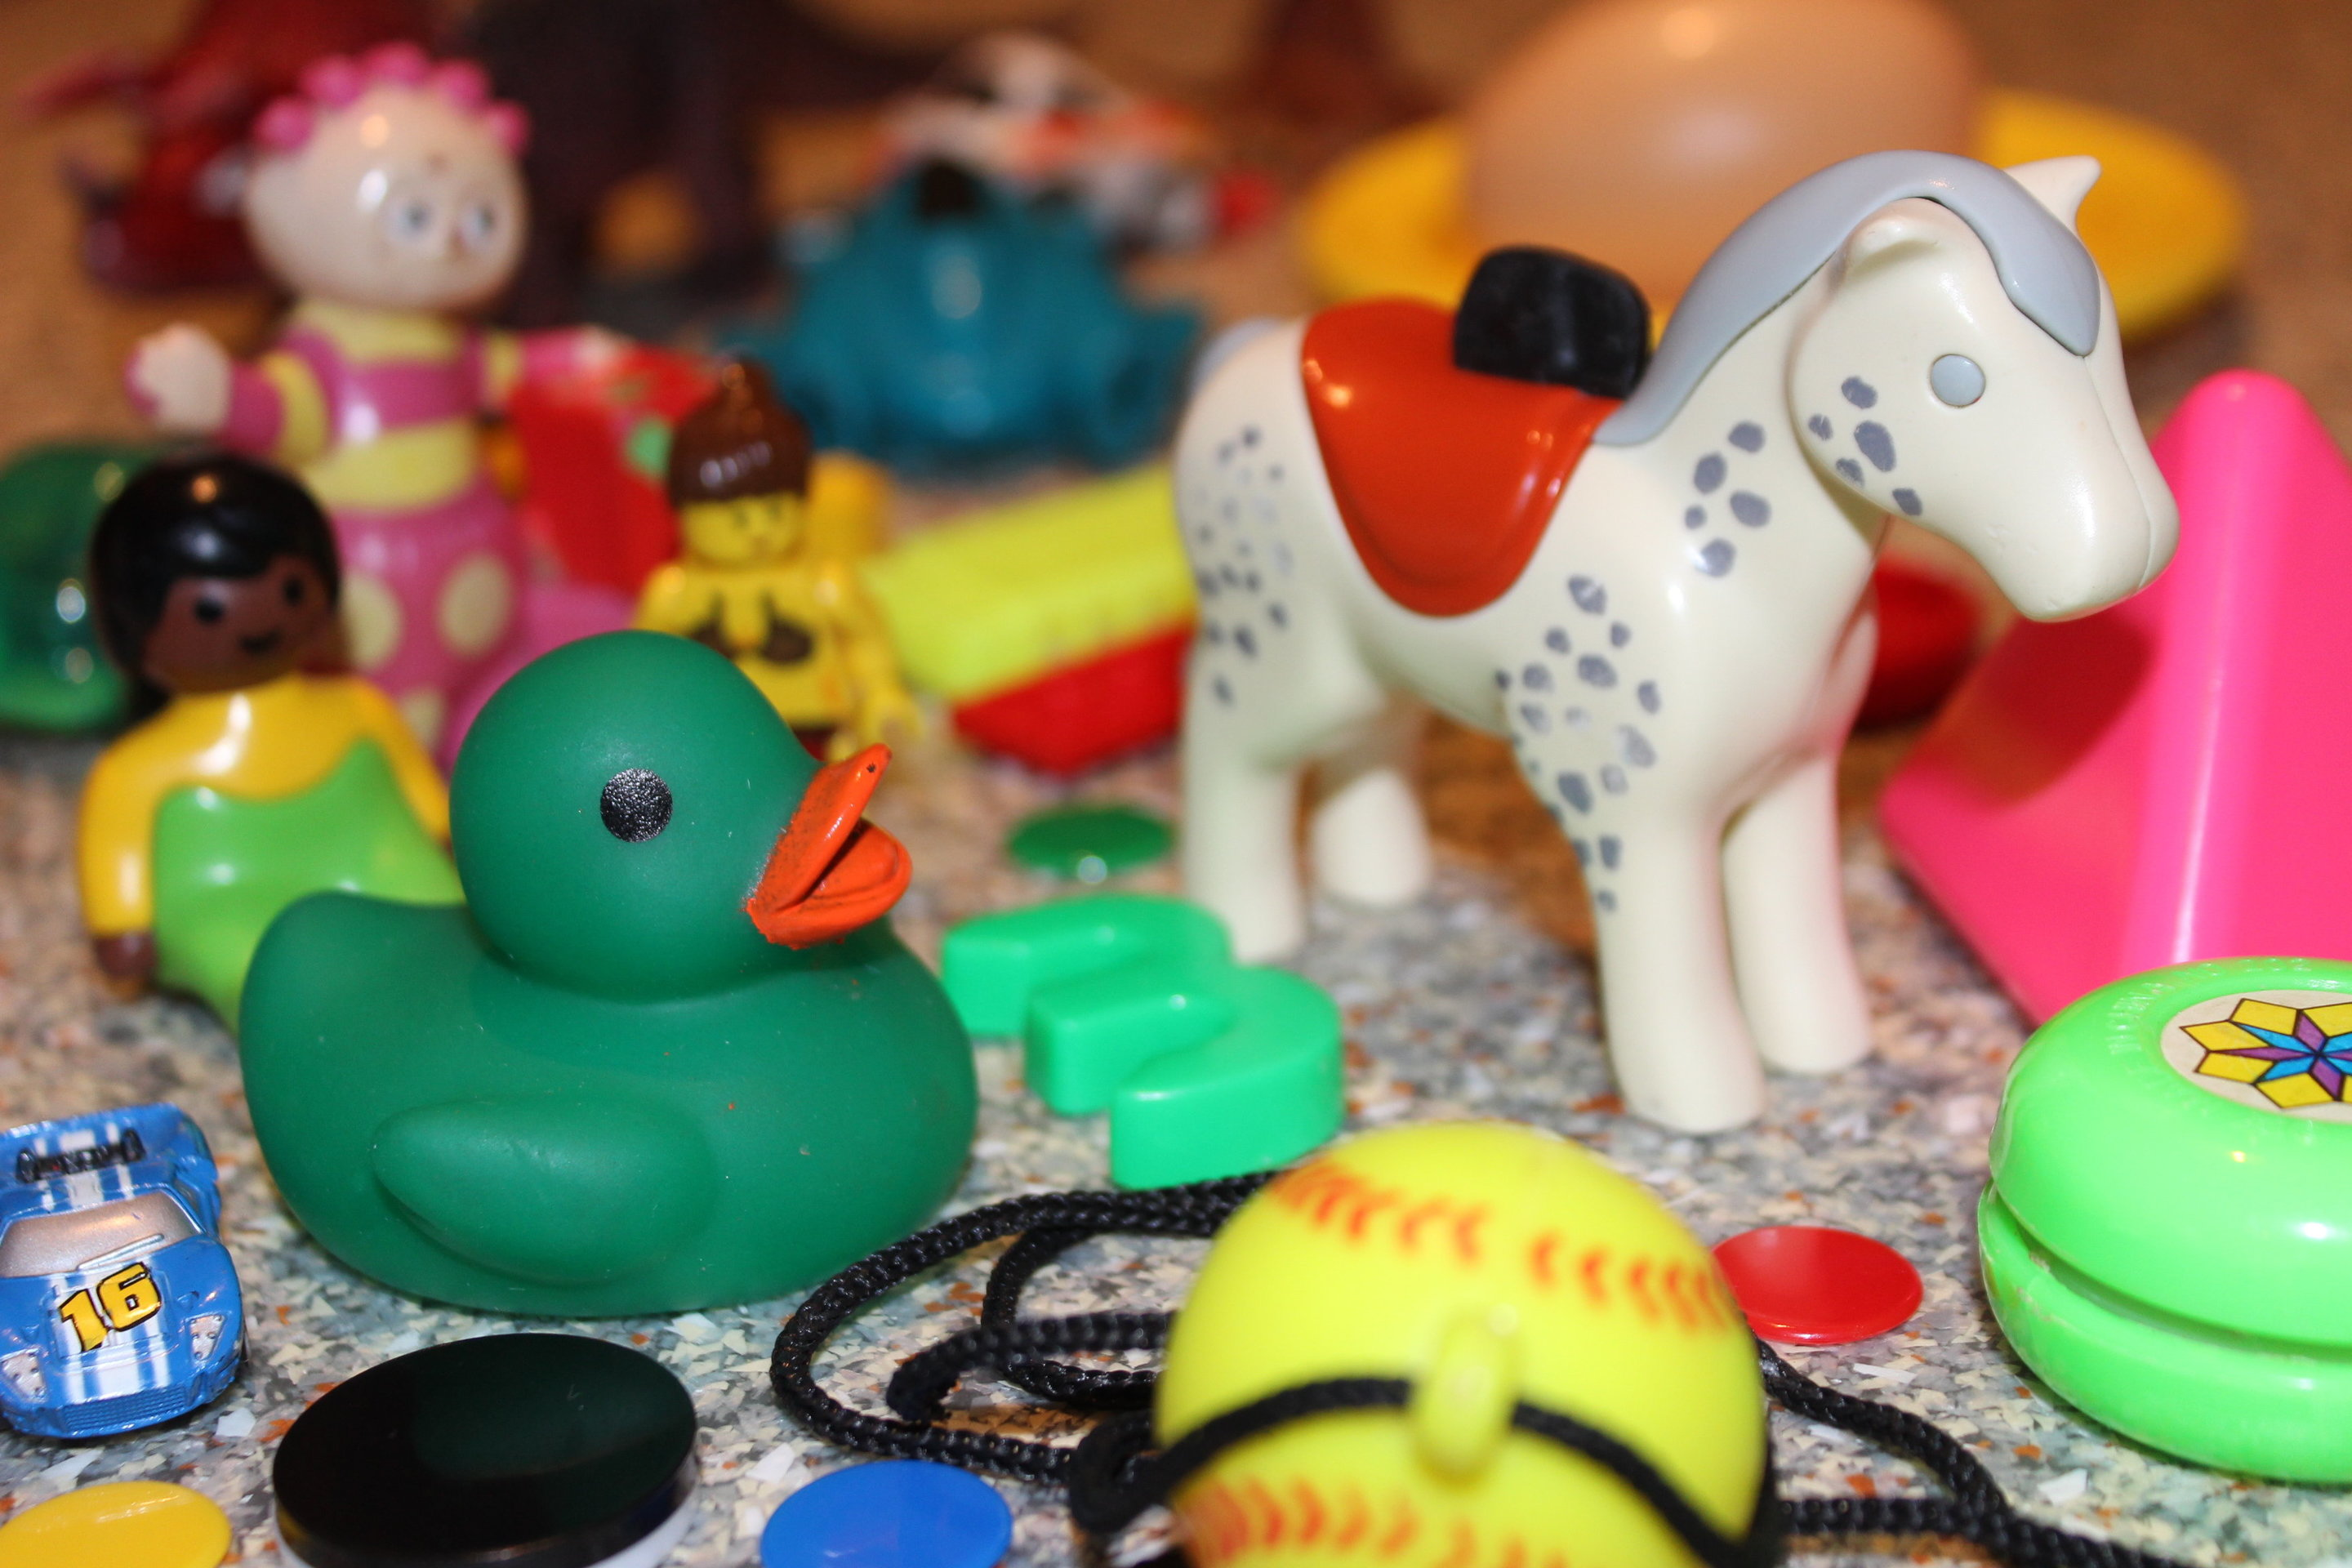 Used Toys Website : Many second hand plastic toys could pose a risk to